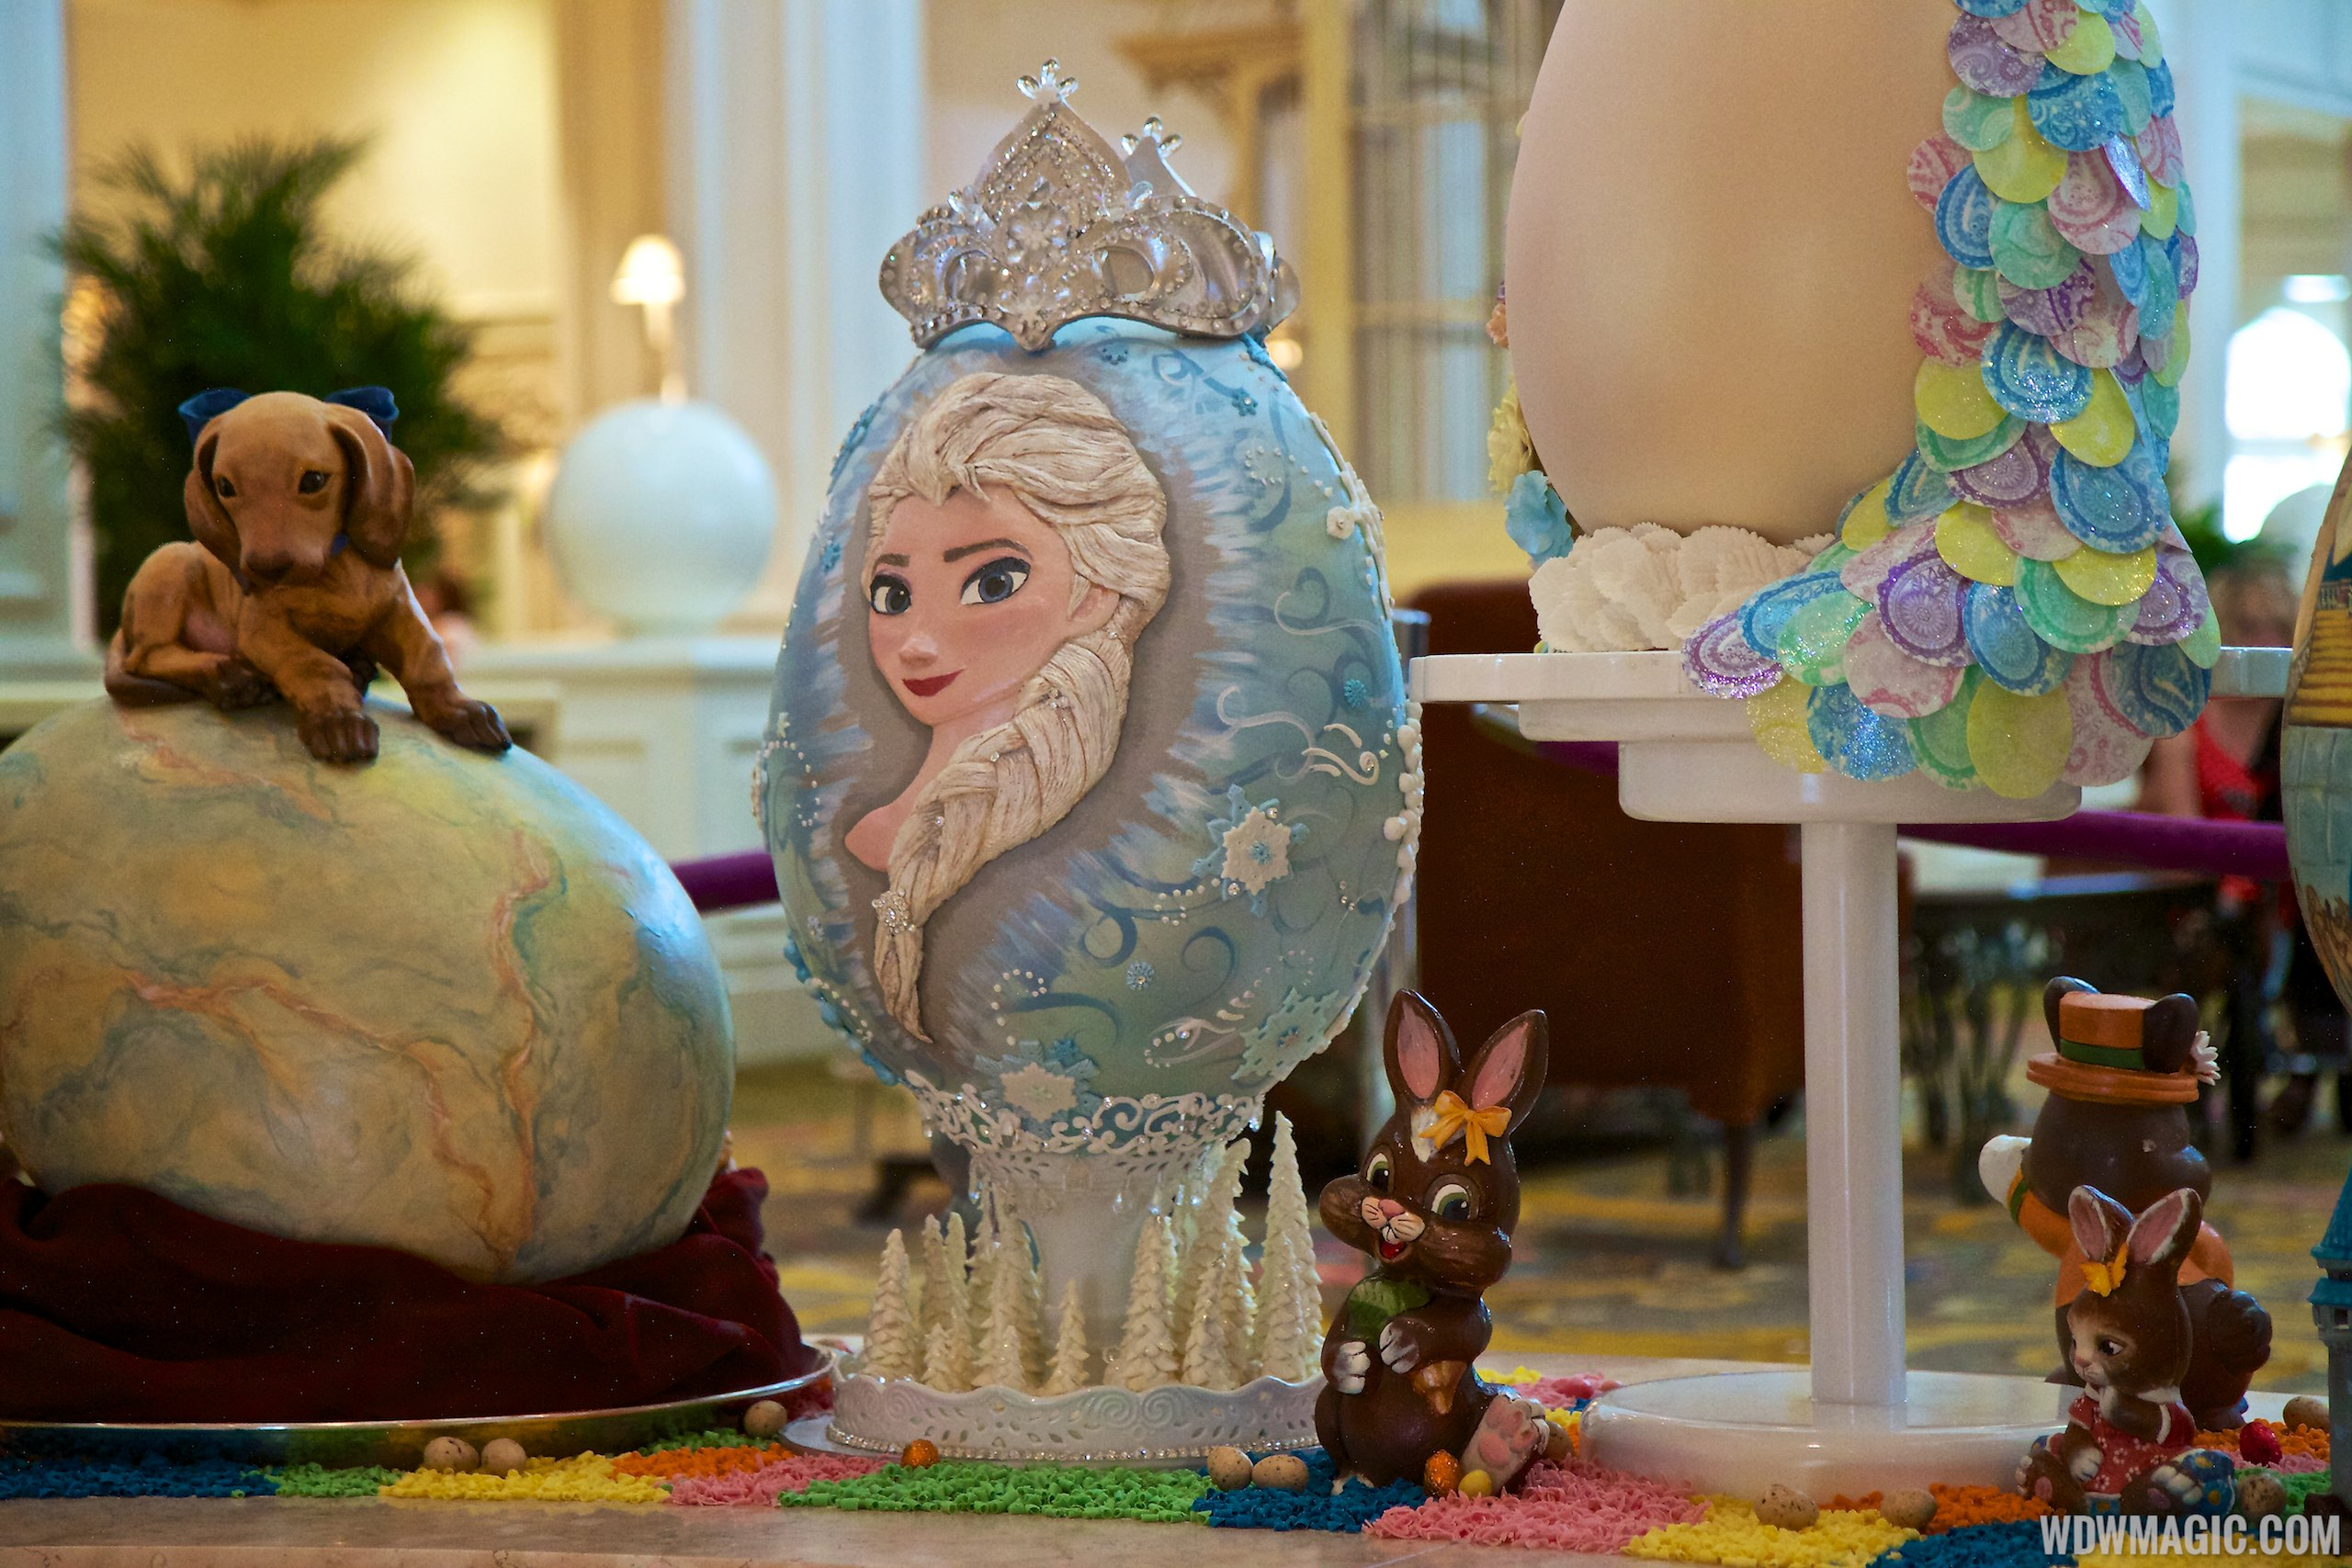 Frozen Easter Egg at the Grand Floridian Resort